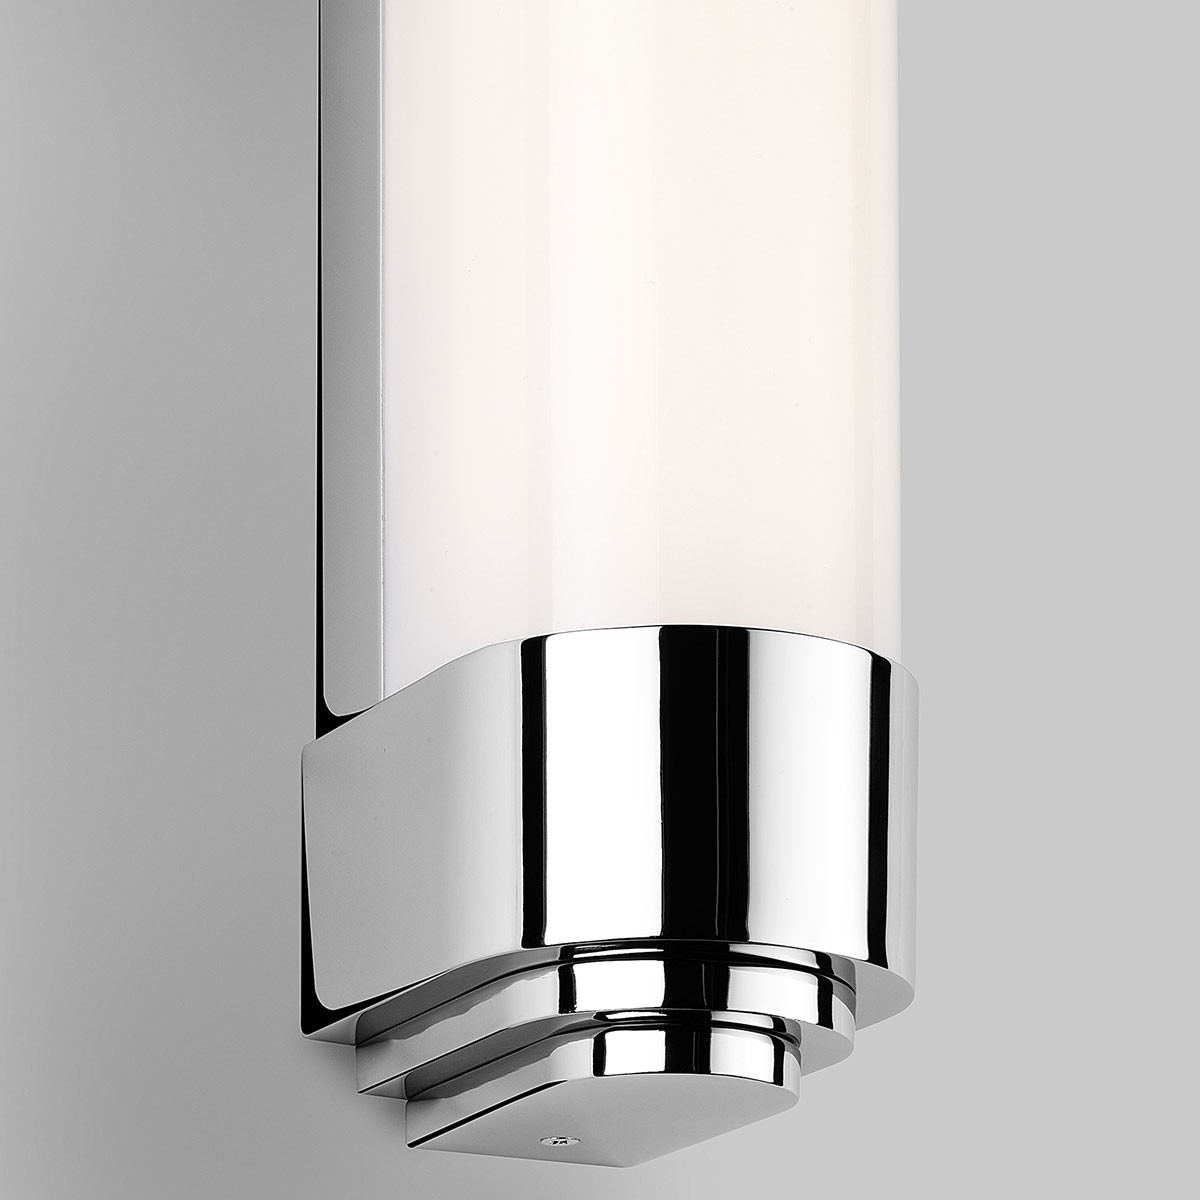 Led Bathroom Wall Lights Uk: Astro Belgravia 500 Polished Chrome Bathroom LED Wall